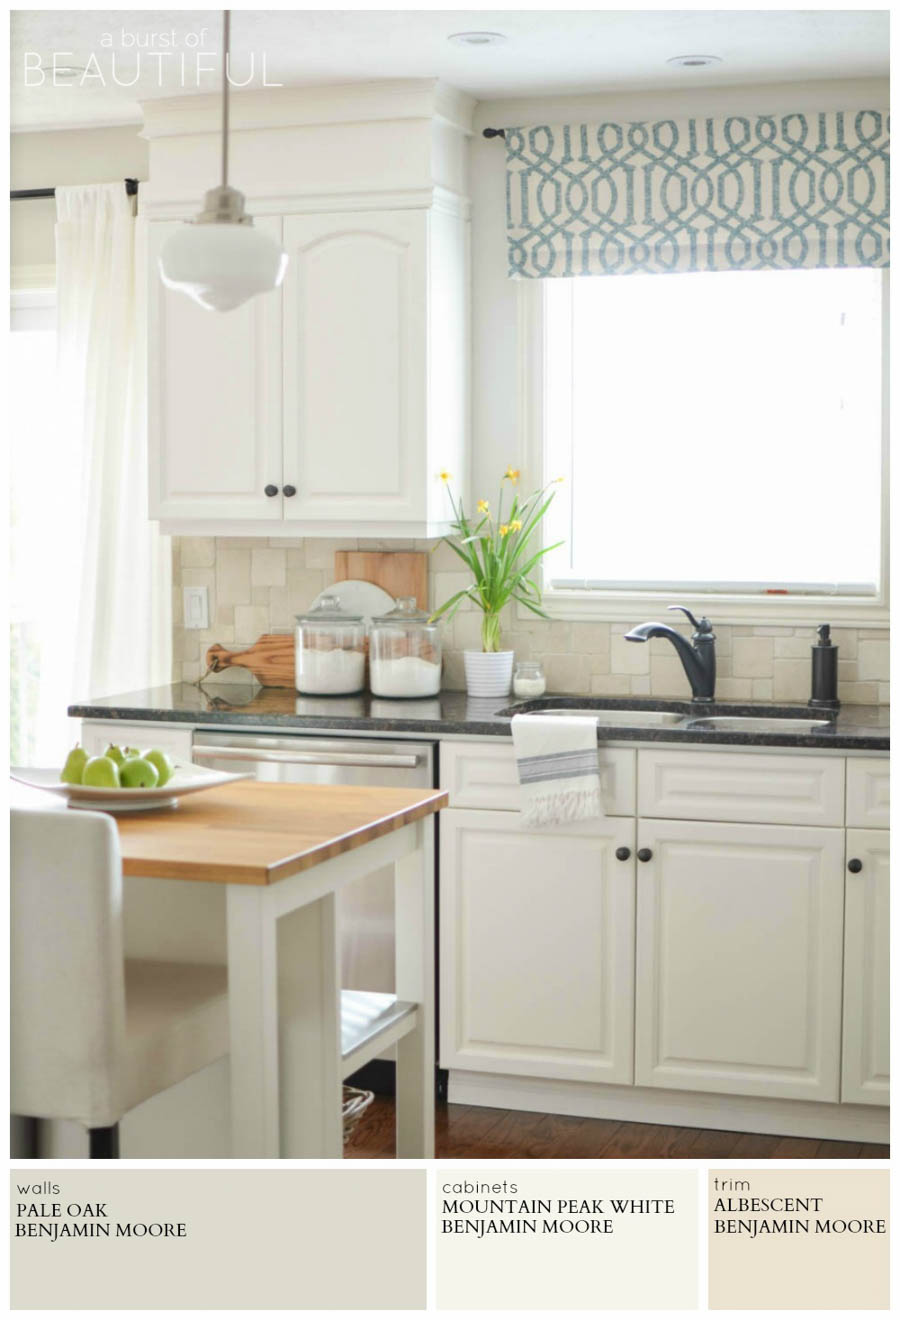 Modern Farmhouse Kitchen Cabinets modern farmhouse neutral paint colors - a burst of beautiful